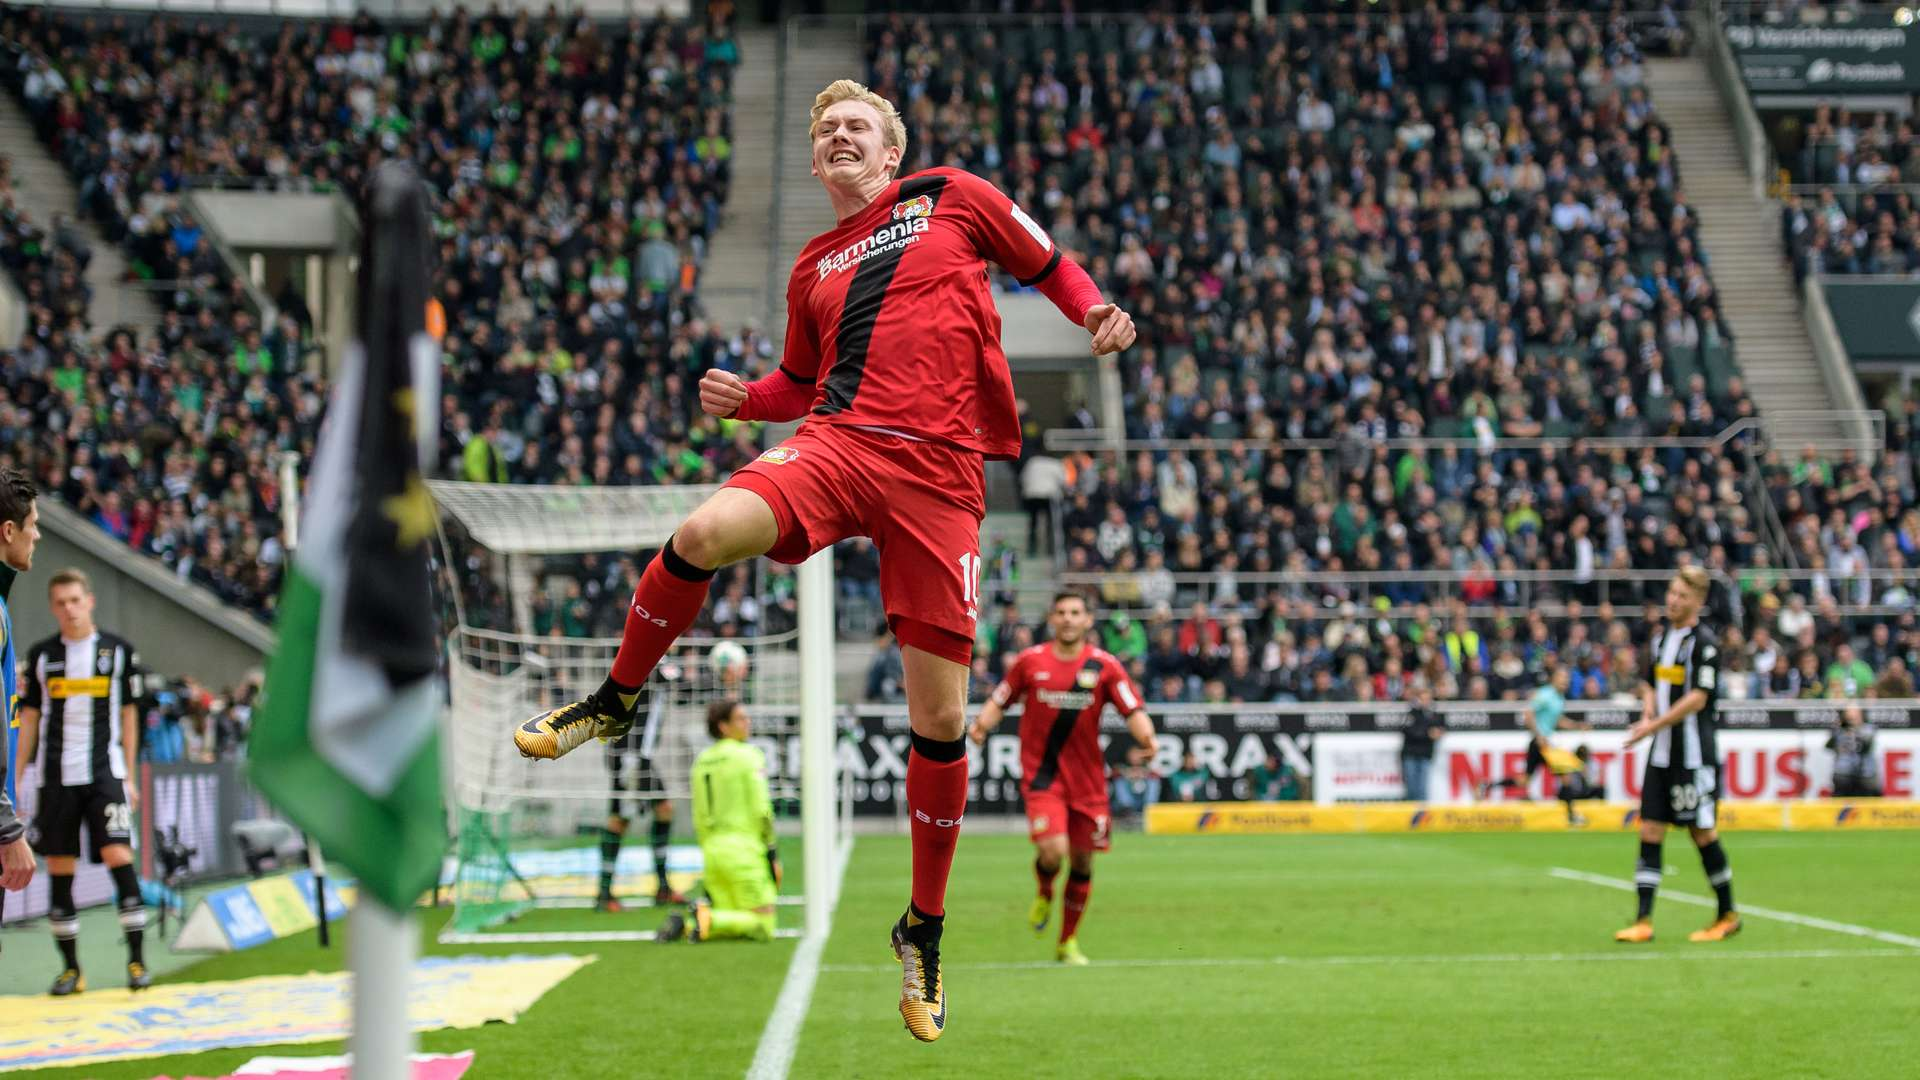 Vote now: Julian Brandt nominated for the 'Felix' award | Bayer04.de